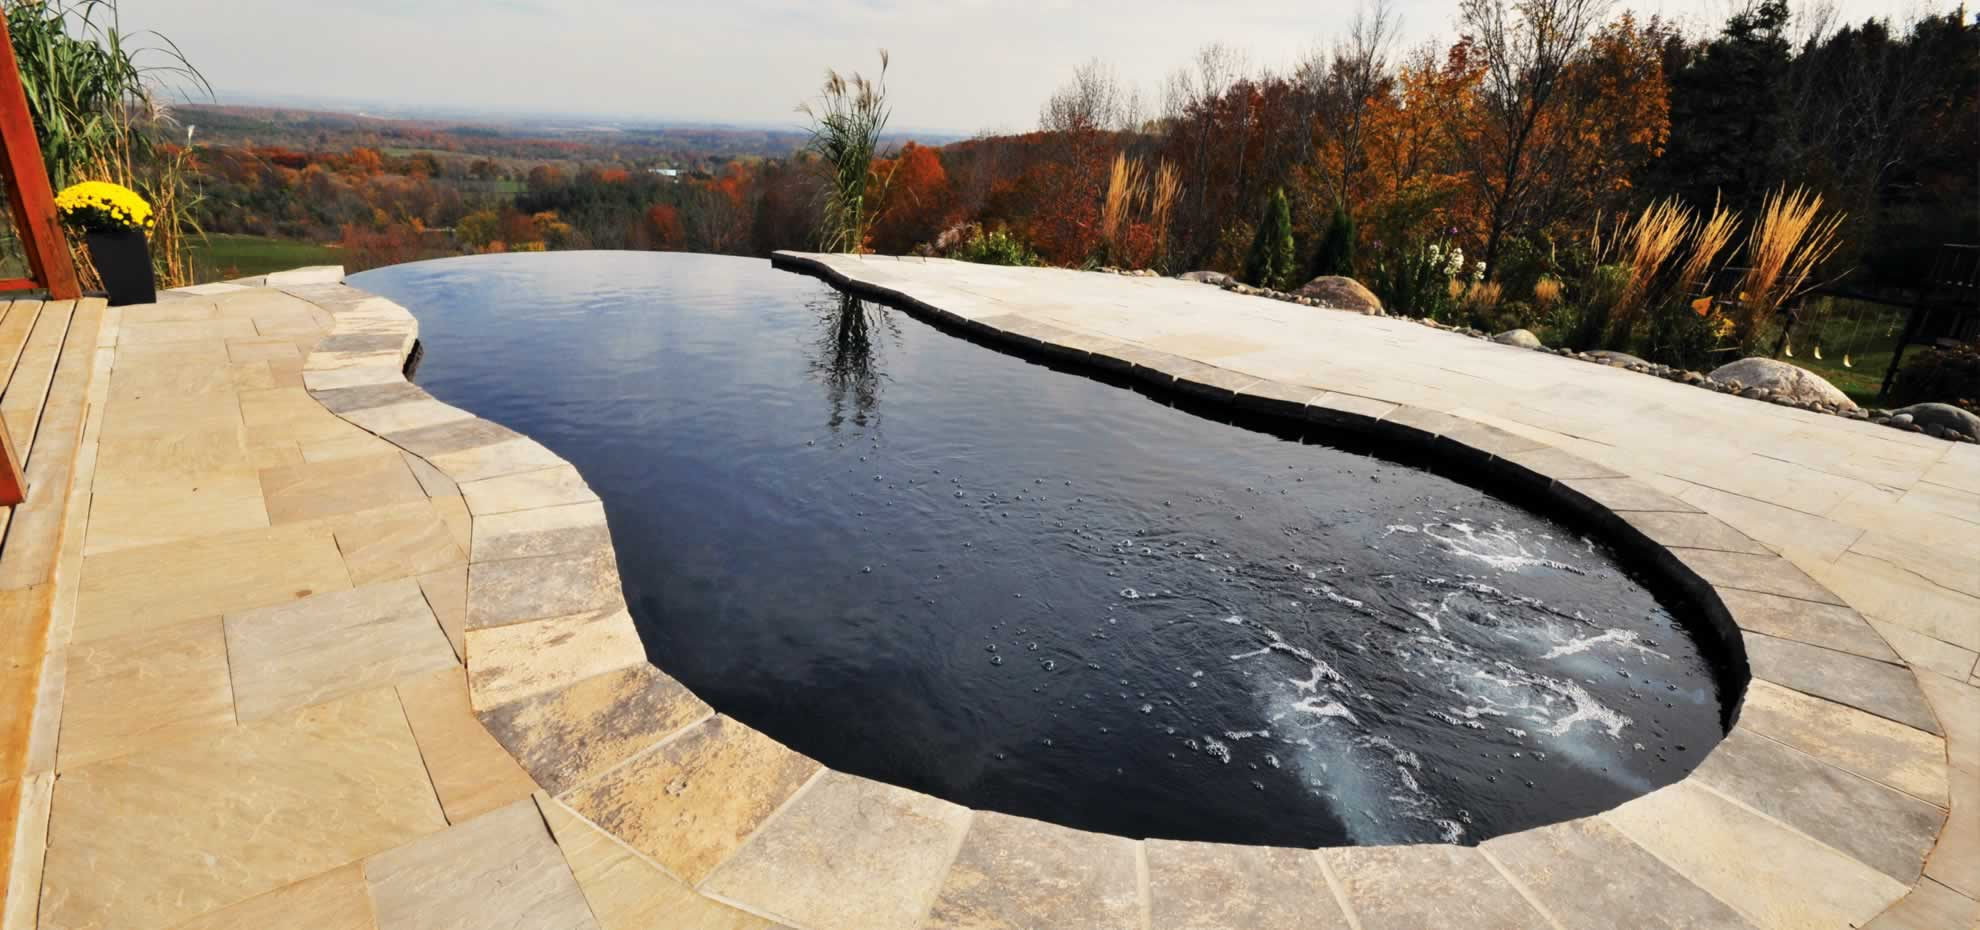 Fiberglass pool with coping by Leisure Pools